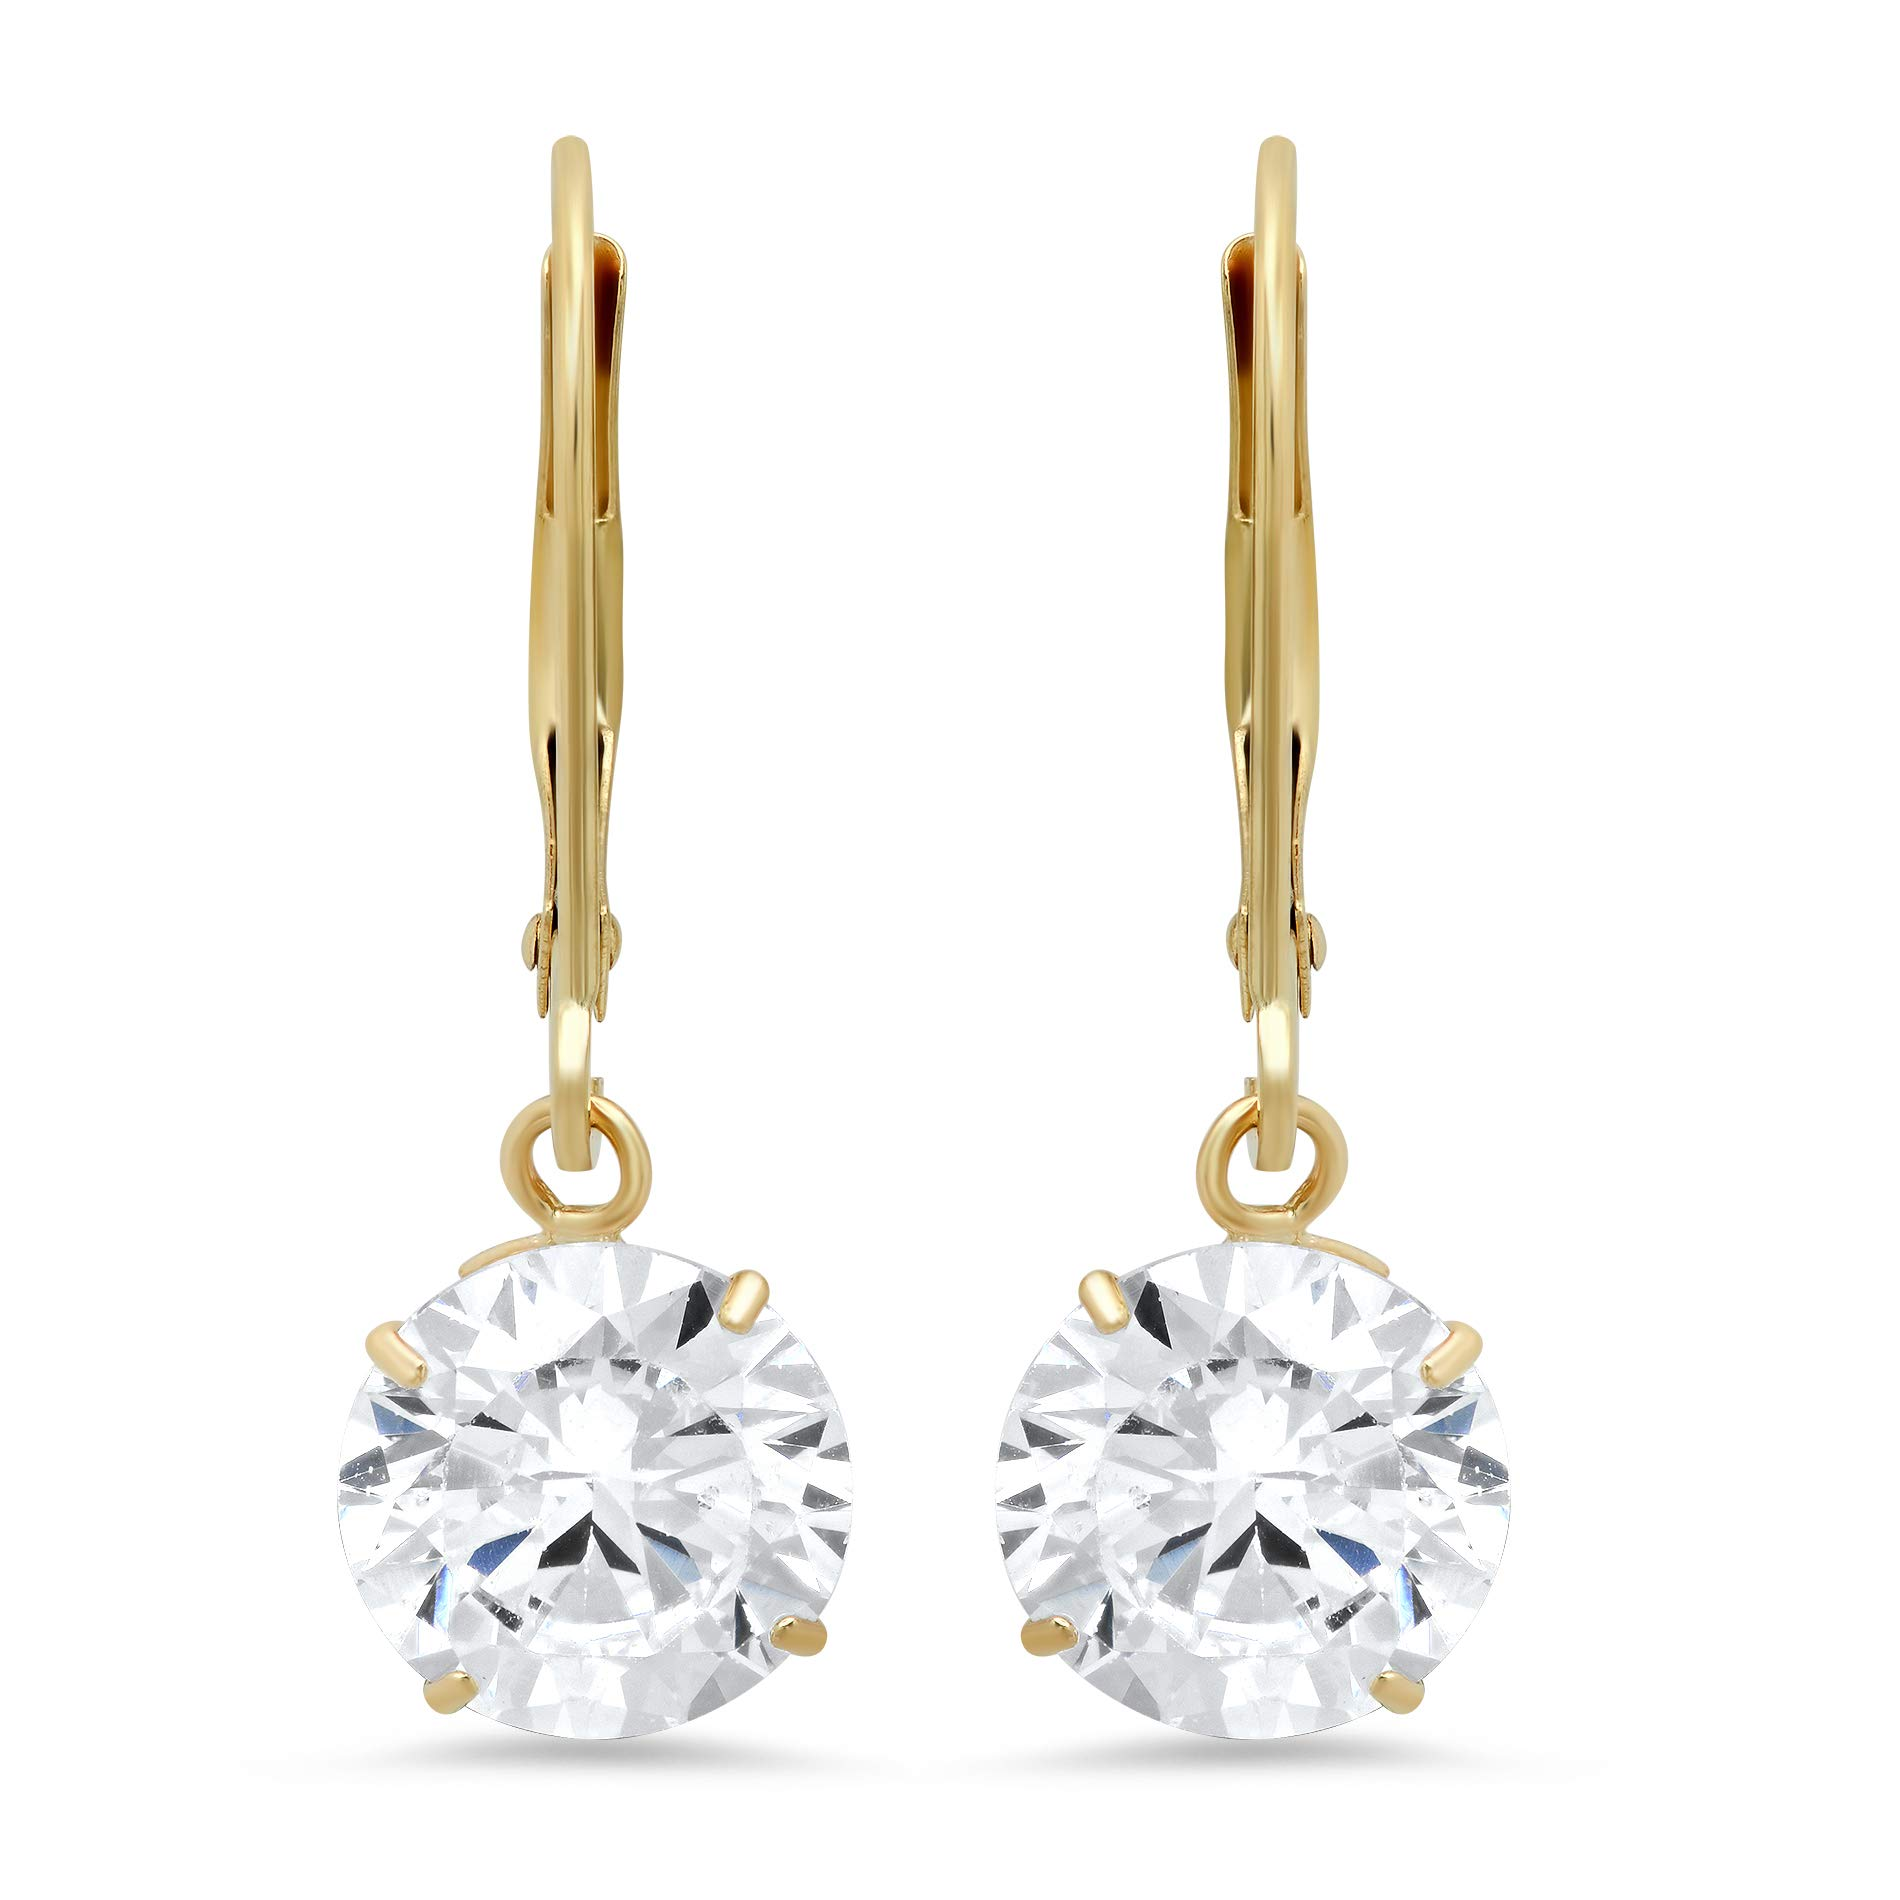 14k Yellow Gold Leverback Earrings with Cubic Zirconia Dangles | 4 CT.TW. | Gift Boxed